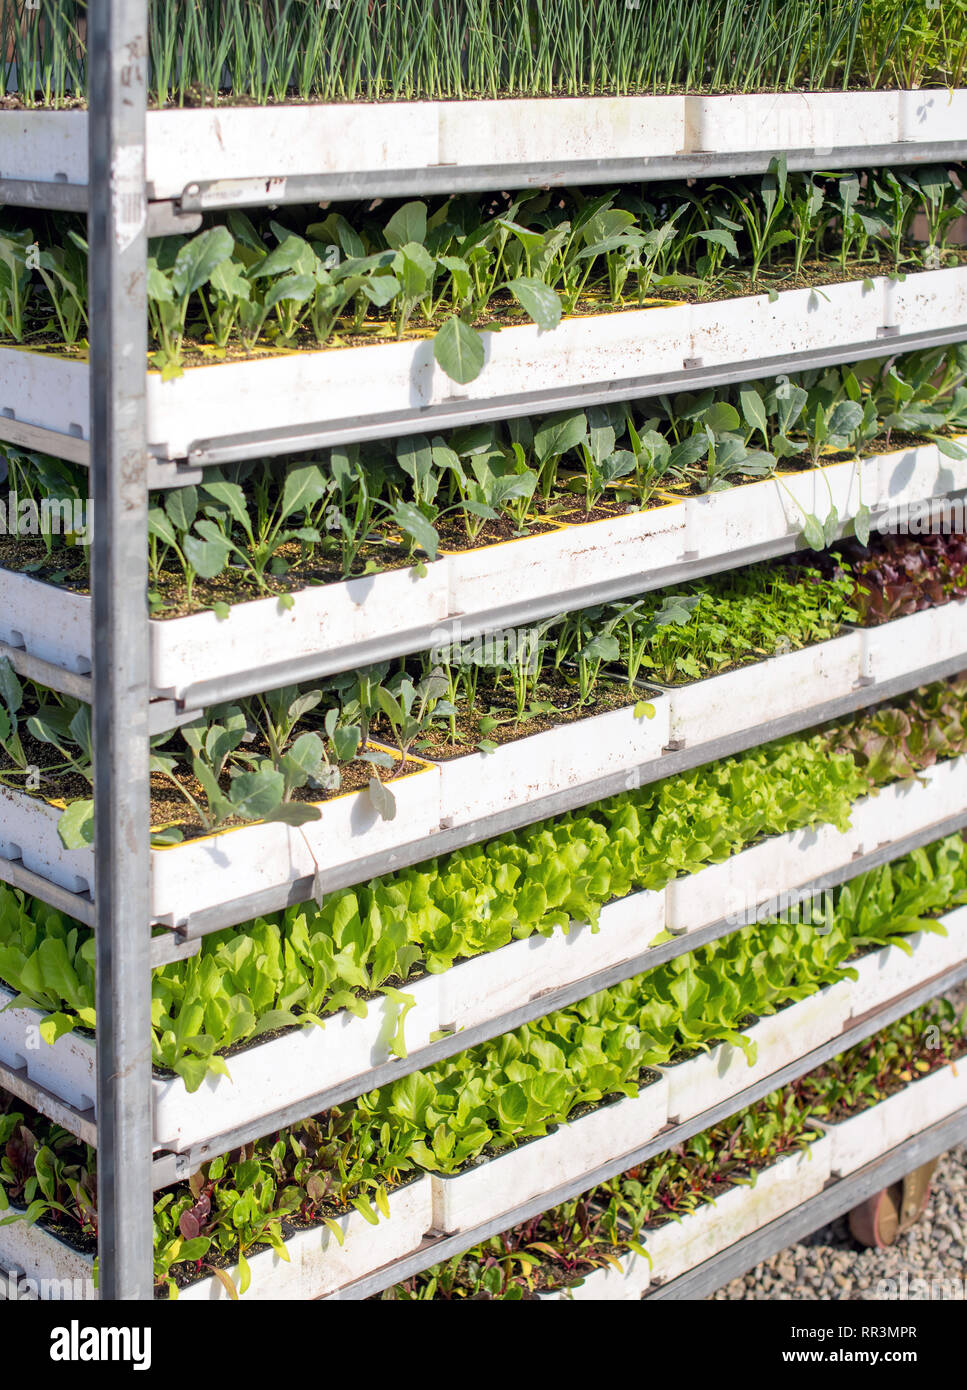 Cart with shelving loaded with assorted small potted plants for sale in a nursery in a close up view - Stock Image